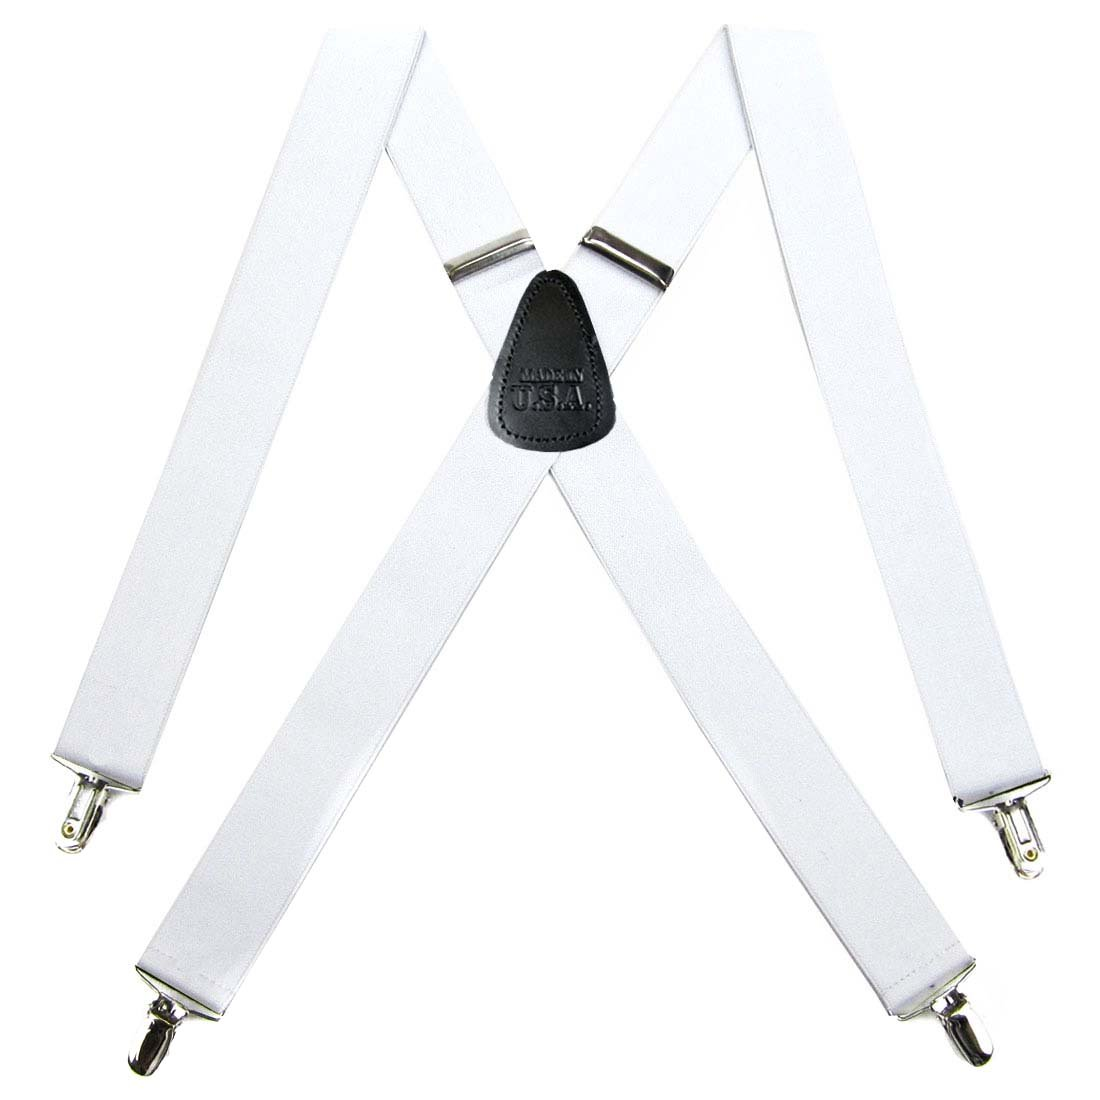 Solid Suspender for Men Made in USA X-Back Genuine Leather Trimmed clip end tuxedo suspenders Many solid colors available Kelley Green One Size BuyYourTies